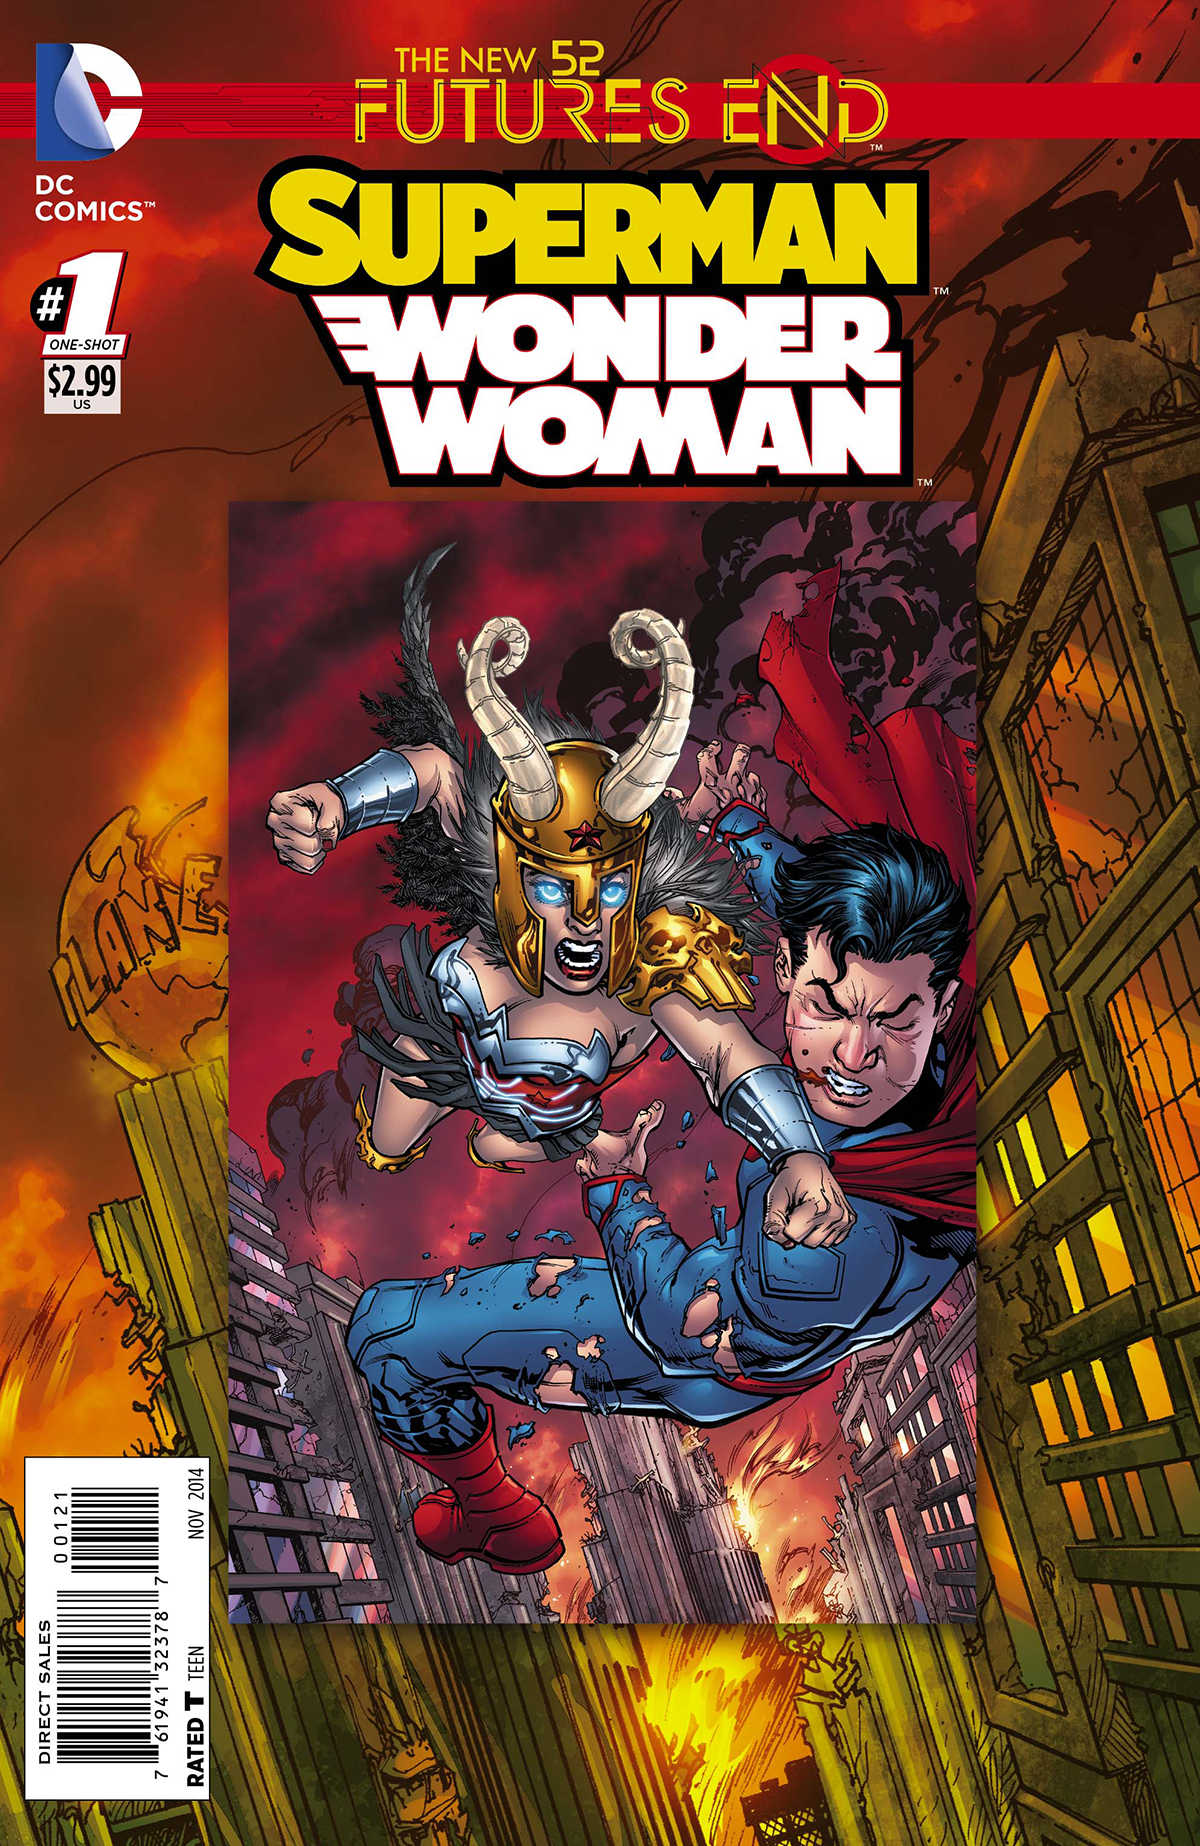 SUPERMAN WONDER WOMAN FUTURES END #1 STANDARD ED